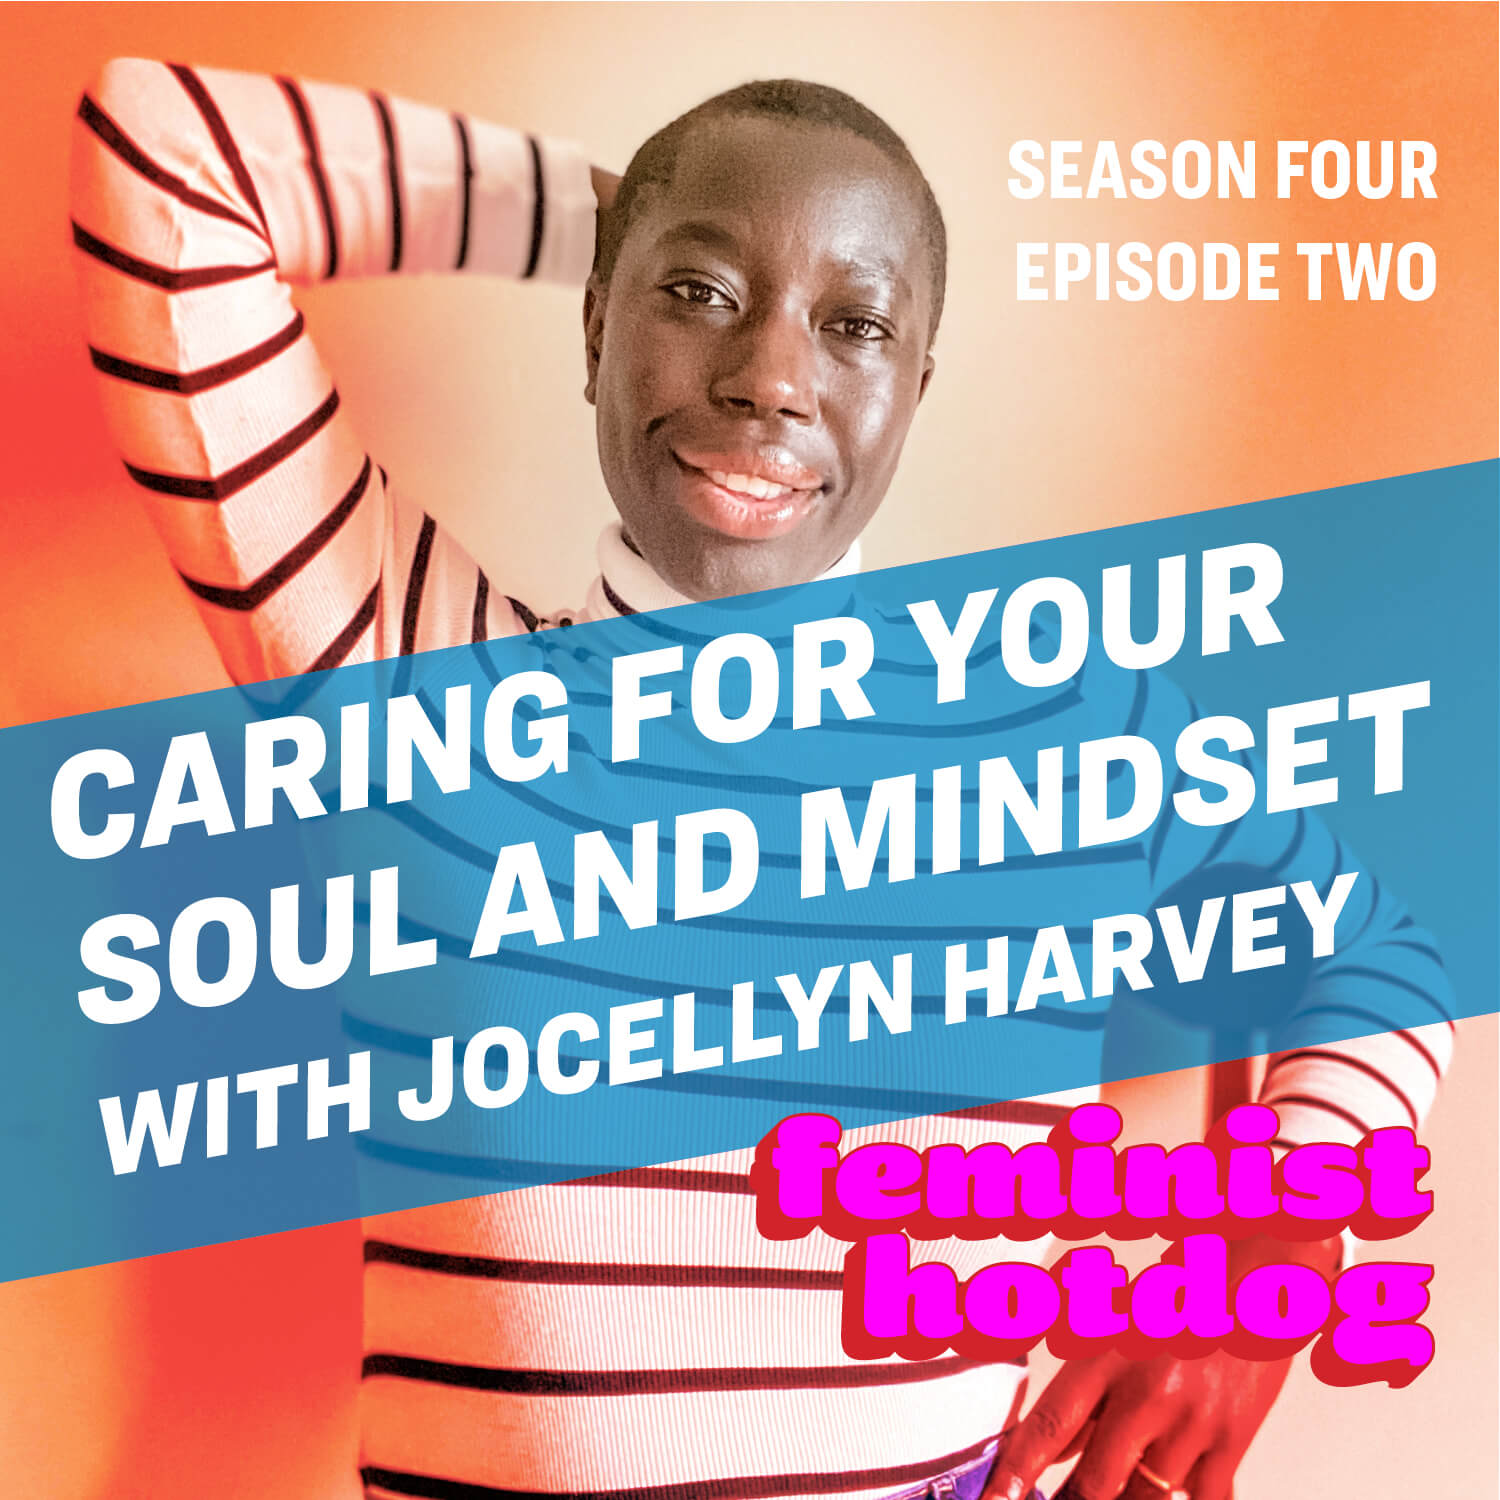 FH S4E2: Caring for Your Soul and Mindset with Jocellyn Harvey